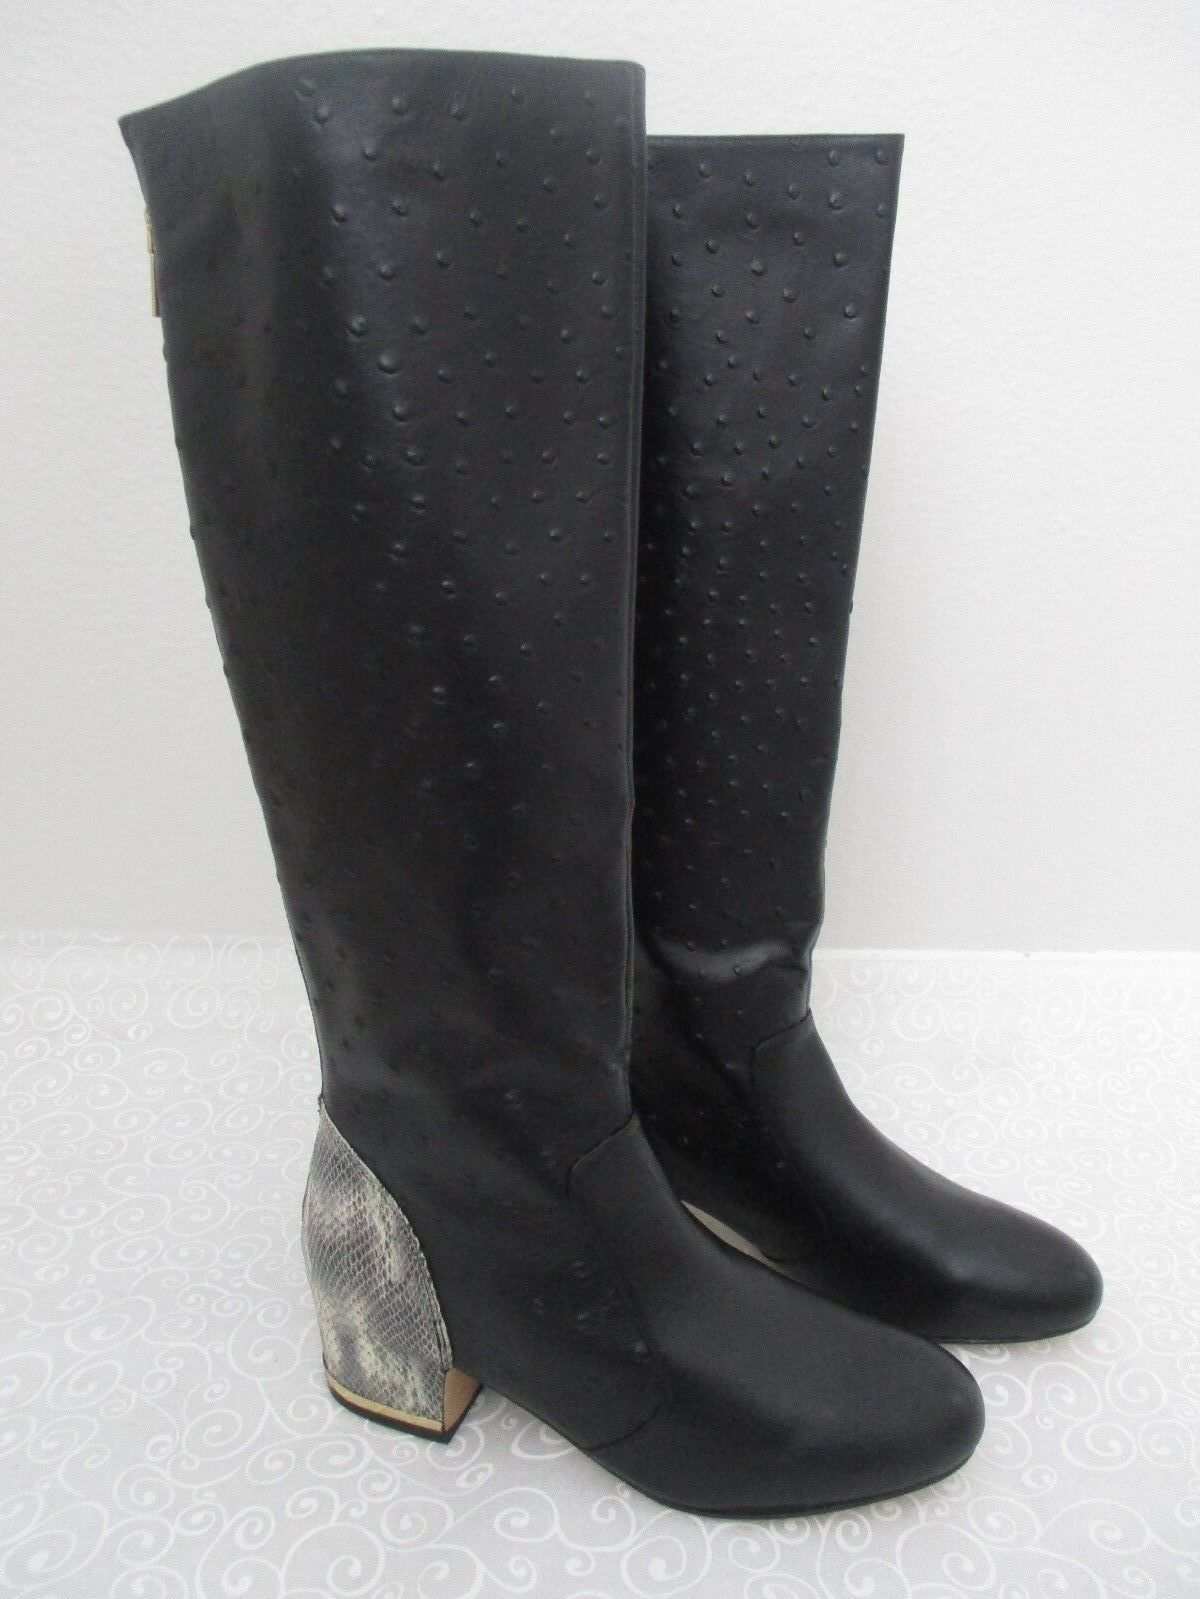 $239 DEESIGNS KNEE BLACK OSTRICH LEATHER KNEE DEESIGNS HIGH BOOTS SIZE 6 M - NEW 7e6cf3